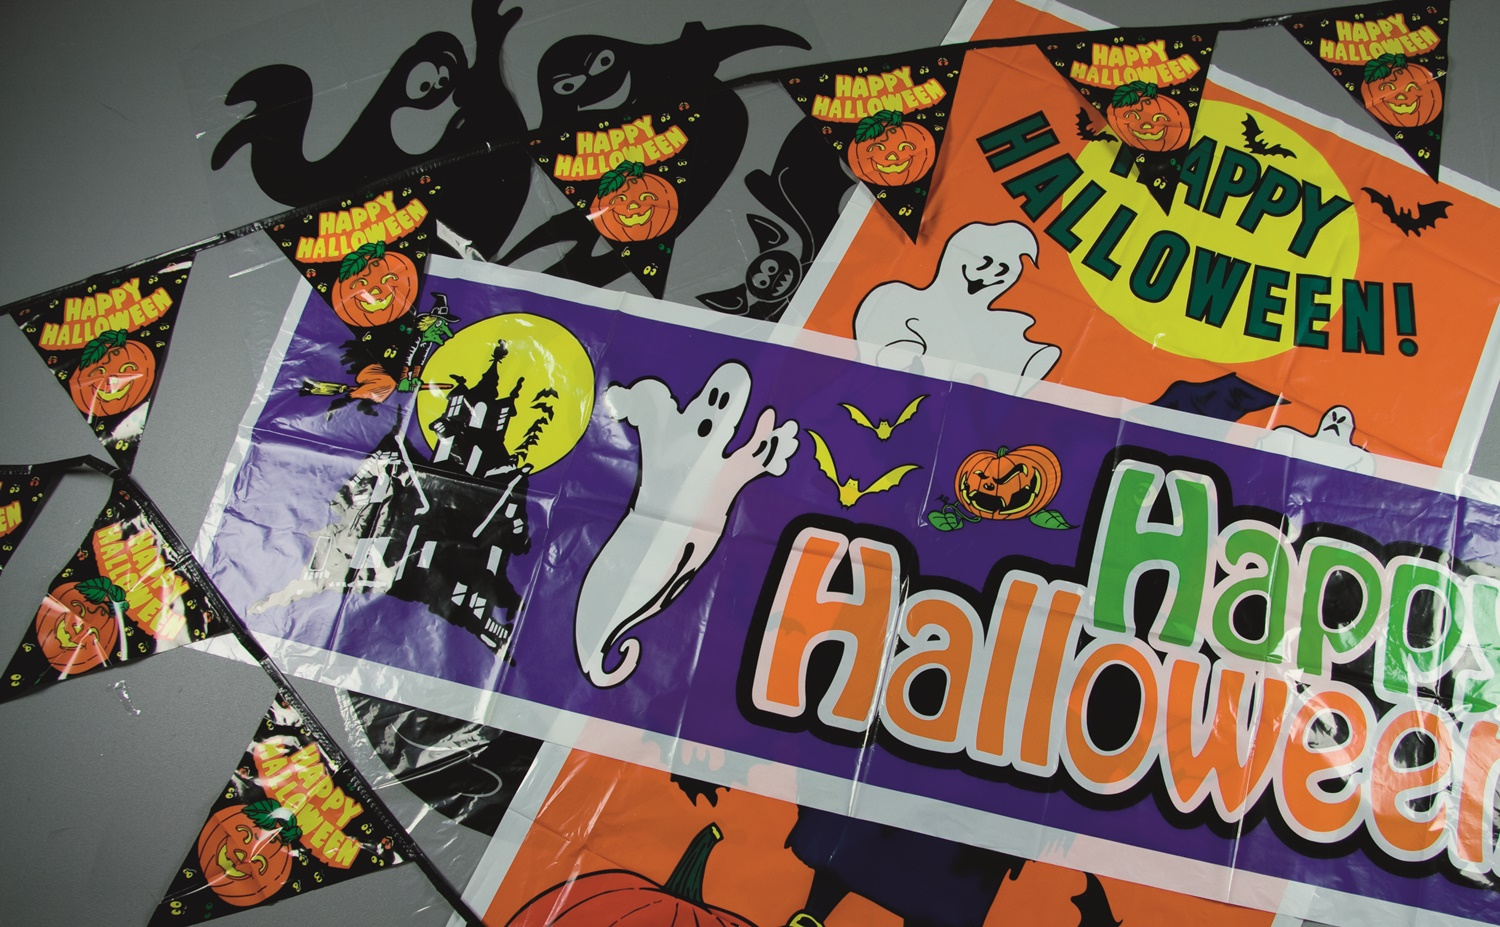 Wholesale Box of 200 Mixed Halloween Decorations - Banners, Tablecloths, Stickers and More